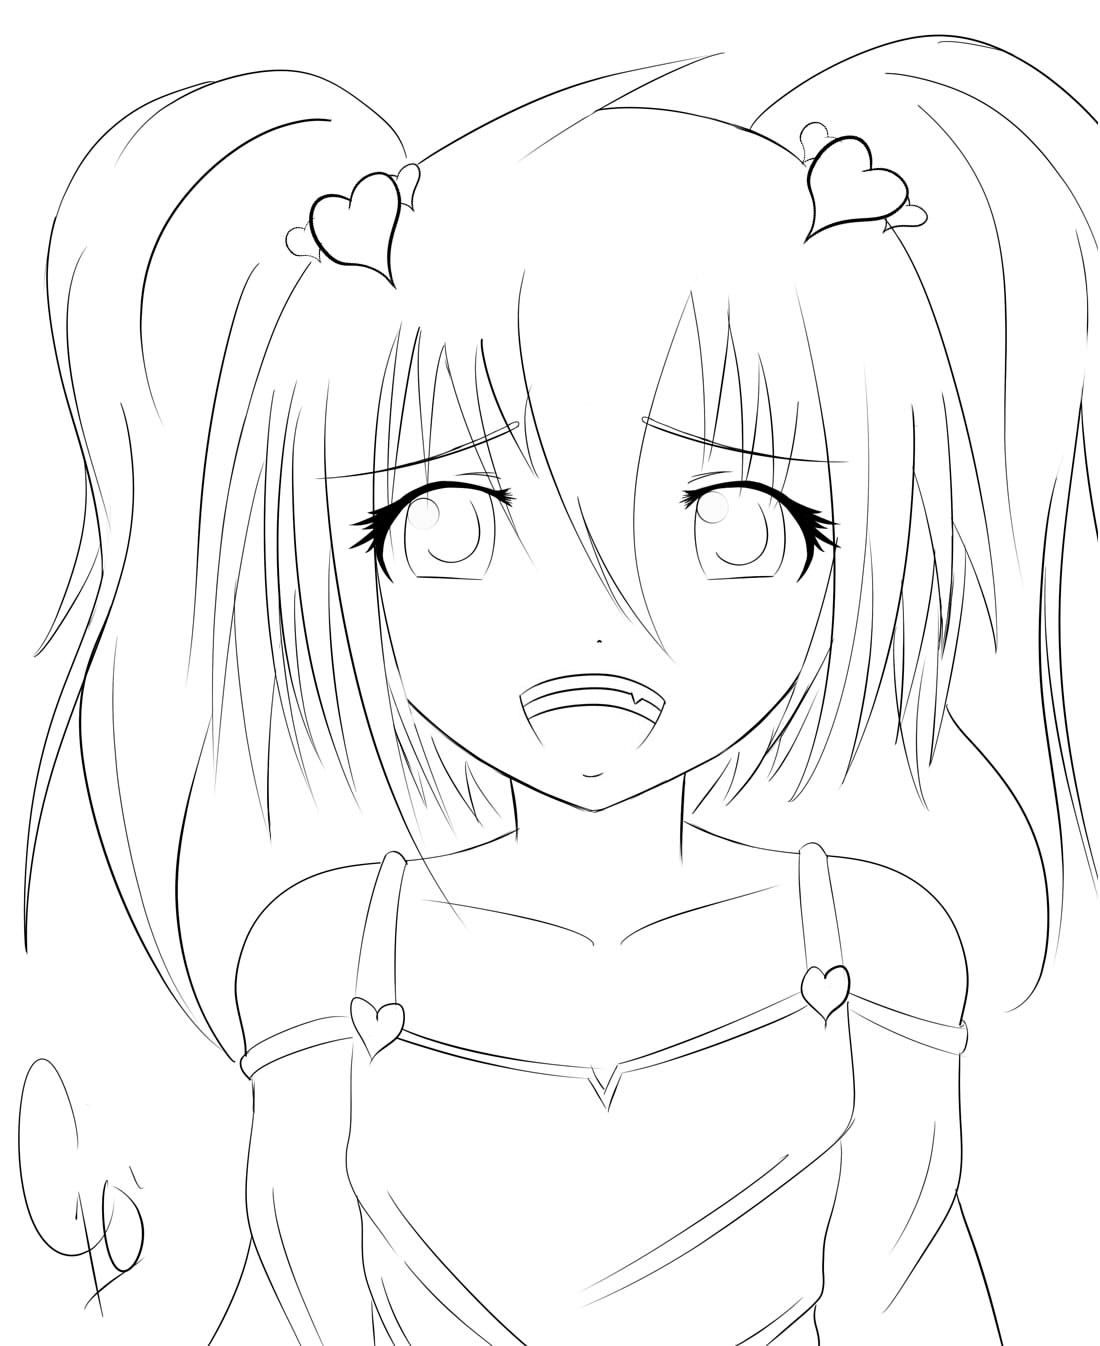 awesome anime girls coloring pages special picture - Coloring Pages Anime Princesses